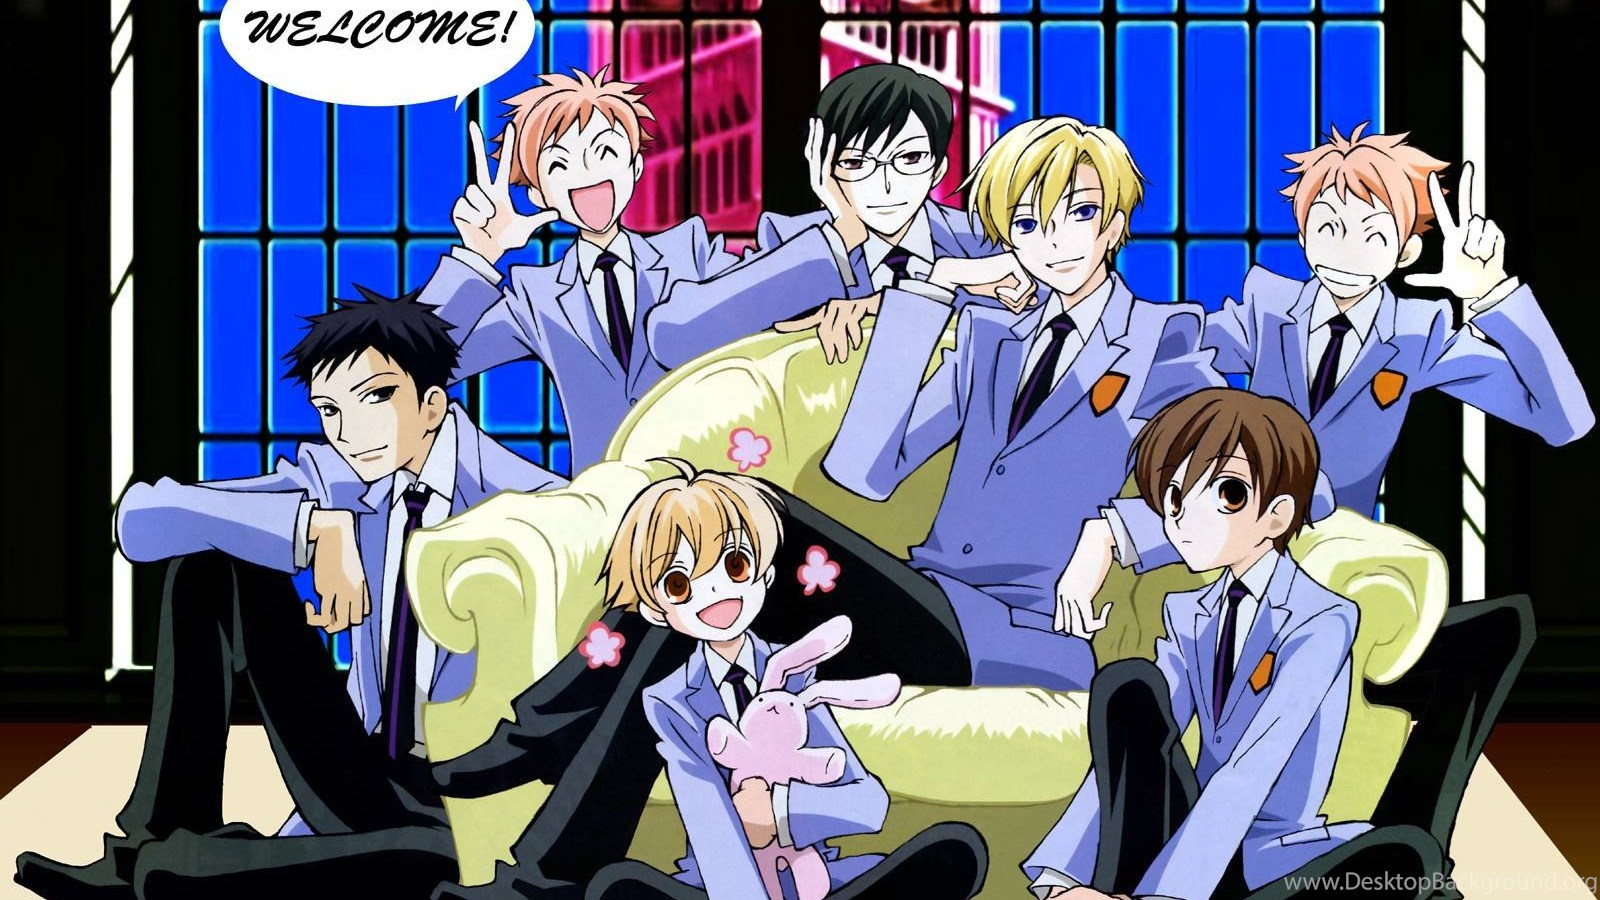 Ouran High School Host Club Wallpapers High Quality Desktop Background